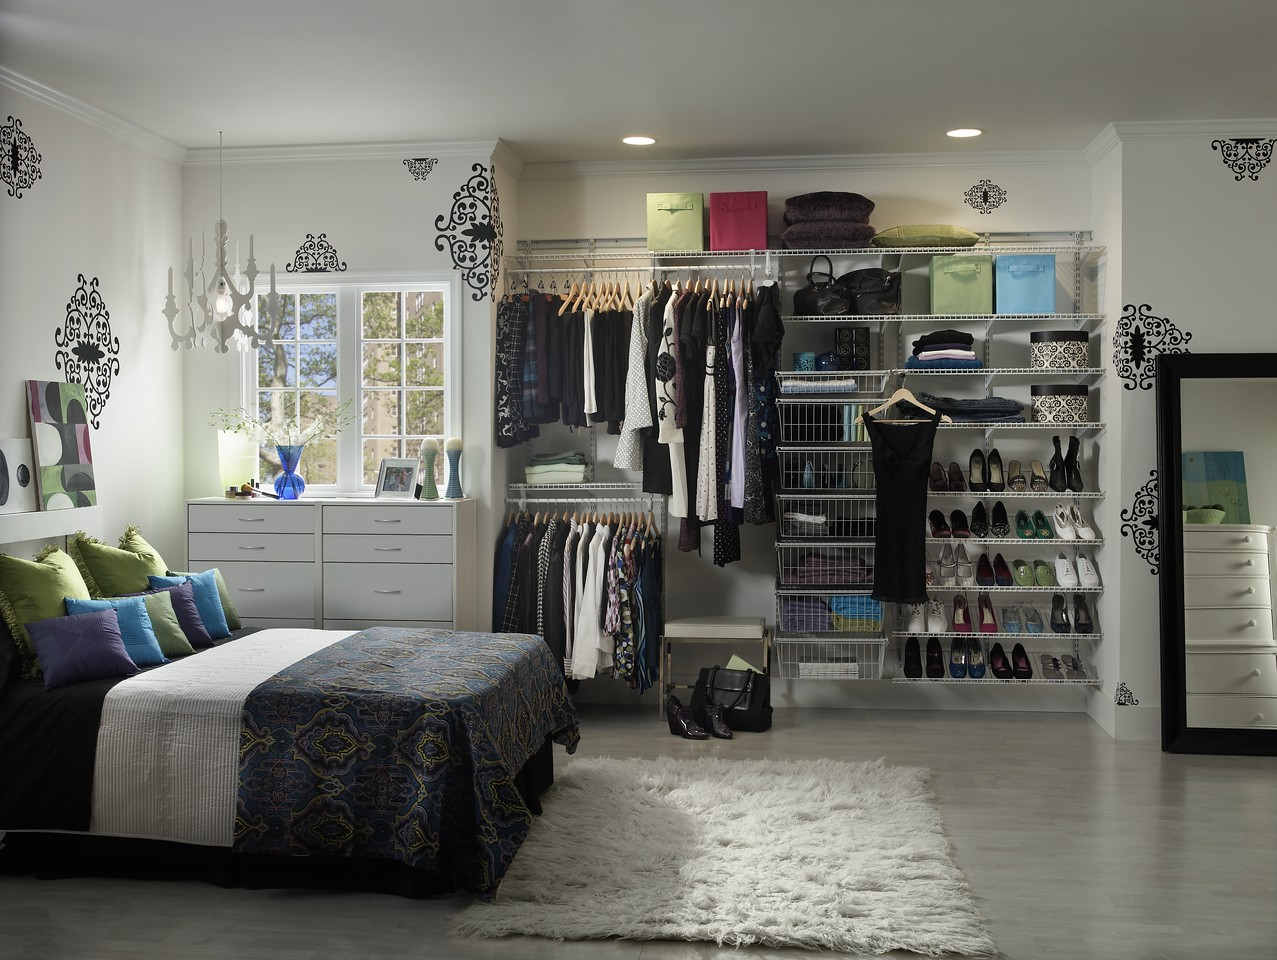 Reach-in closet featuring ClosetMaid ShelfTrack, pull-out baskets and shoe shelves in White